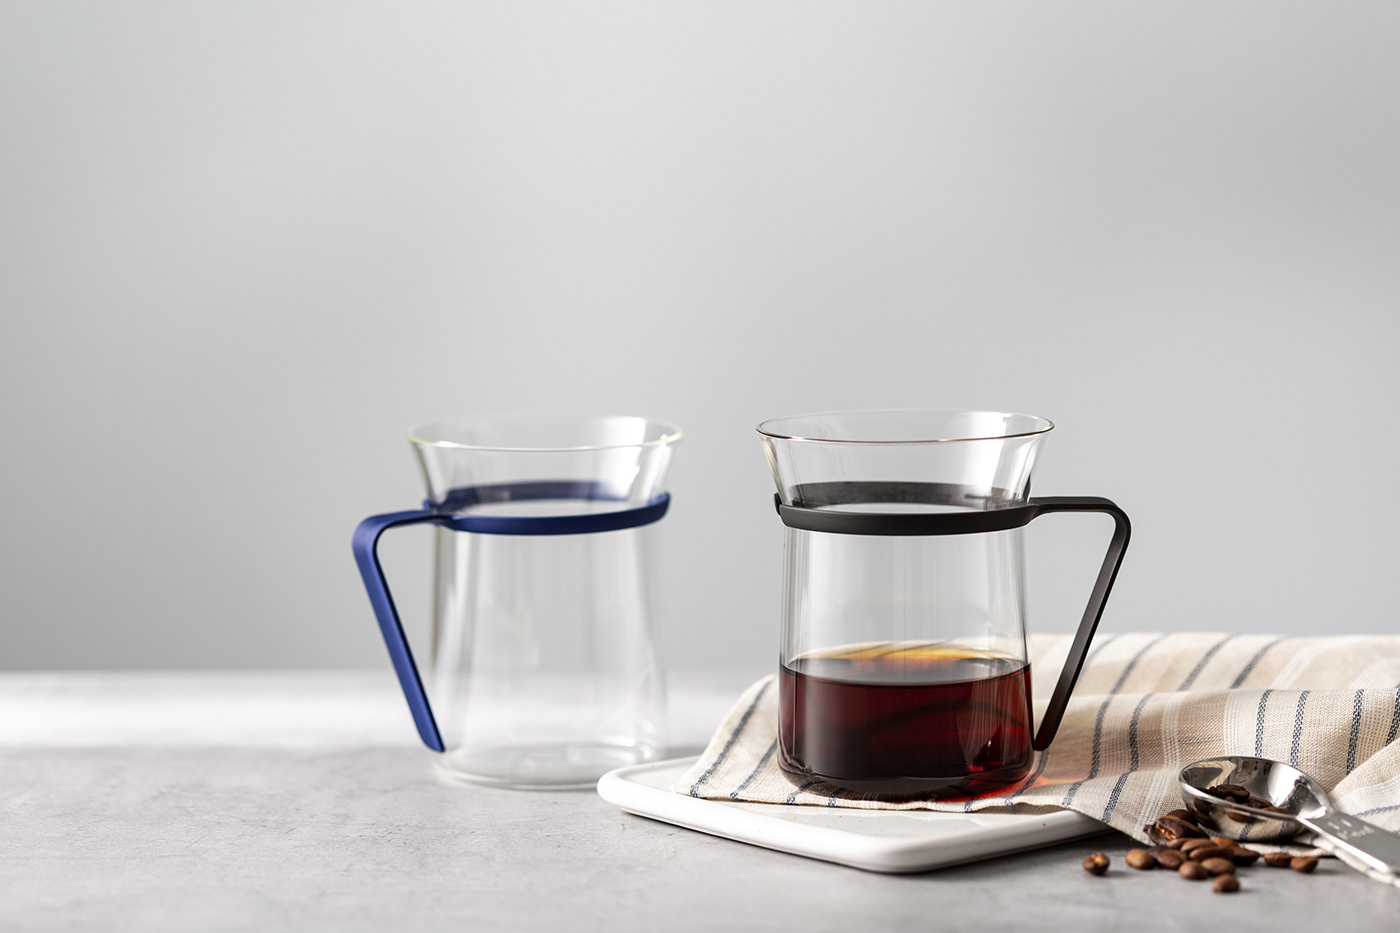 Coffee design Fashion  industrial design  Photography  product tableware